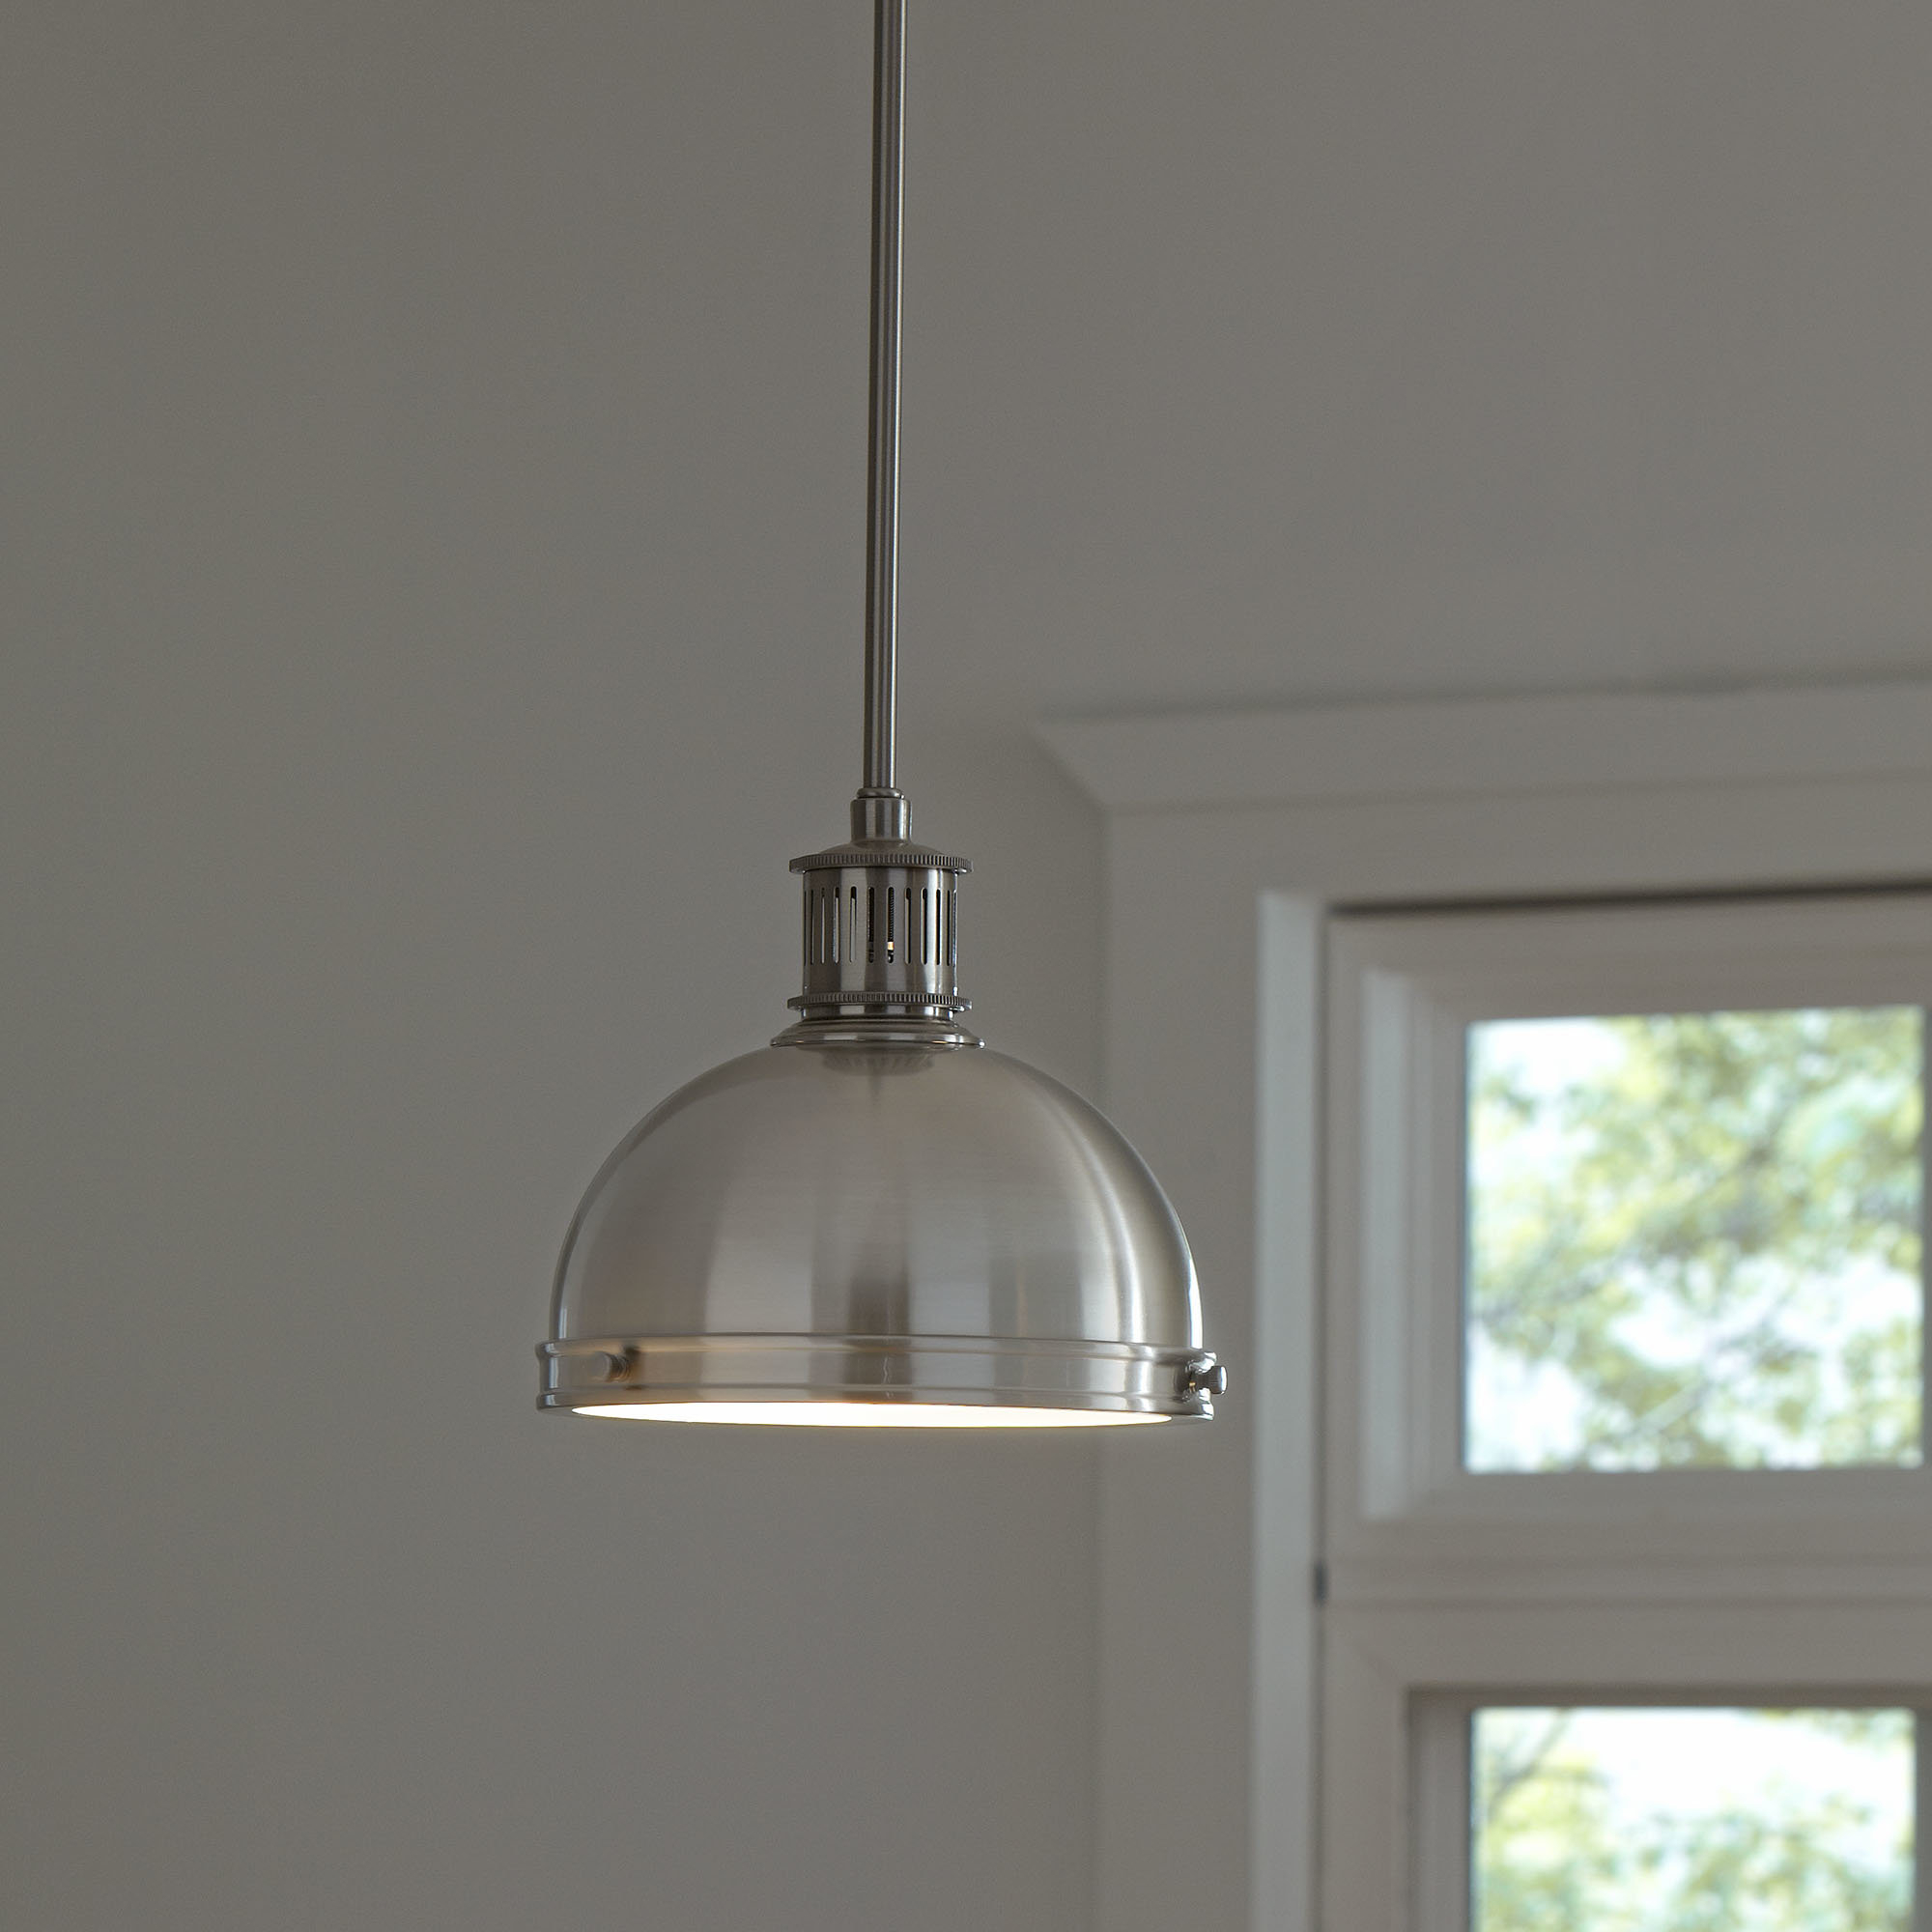 Famous Amara 3 Light Dome Pendant With Amara 2 Light Dome Pendants (View 6 of 25)